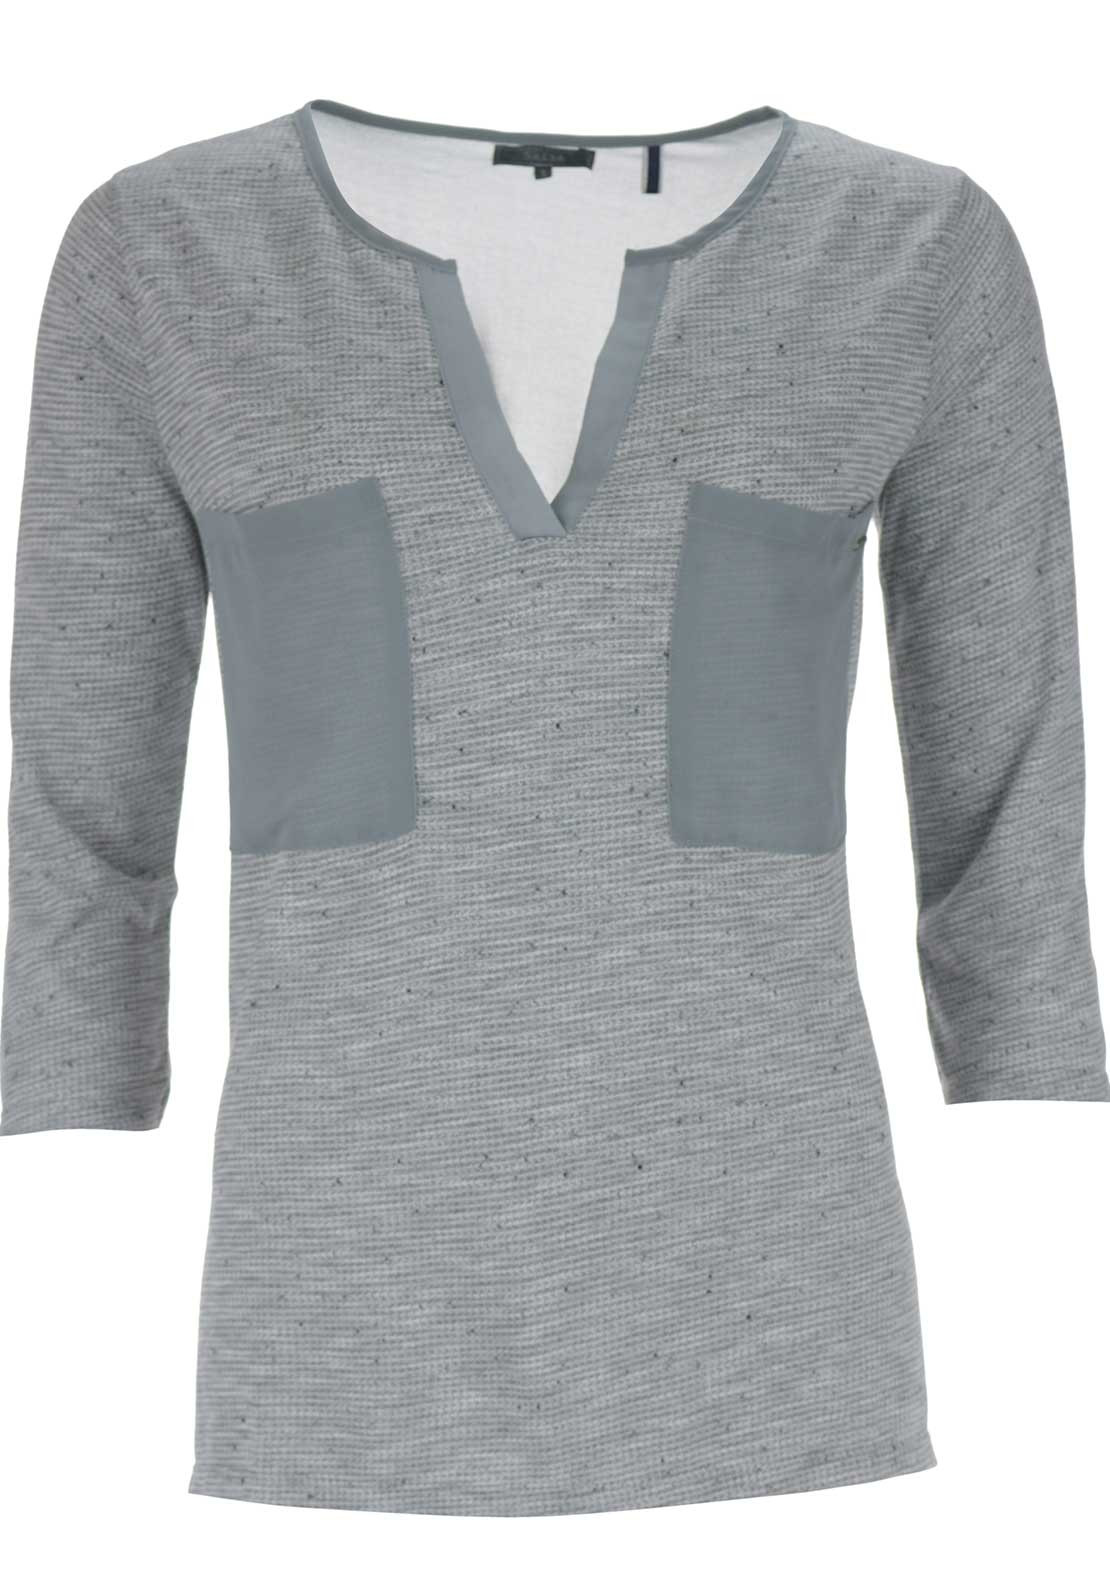 Salsa Chiffon Knit Cropped Sleeve Top, Grey